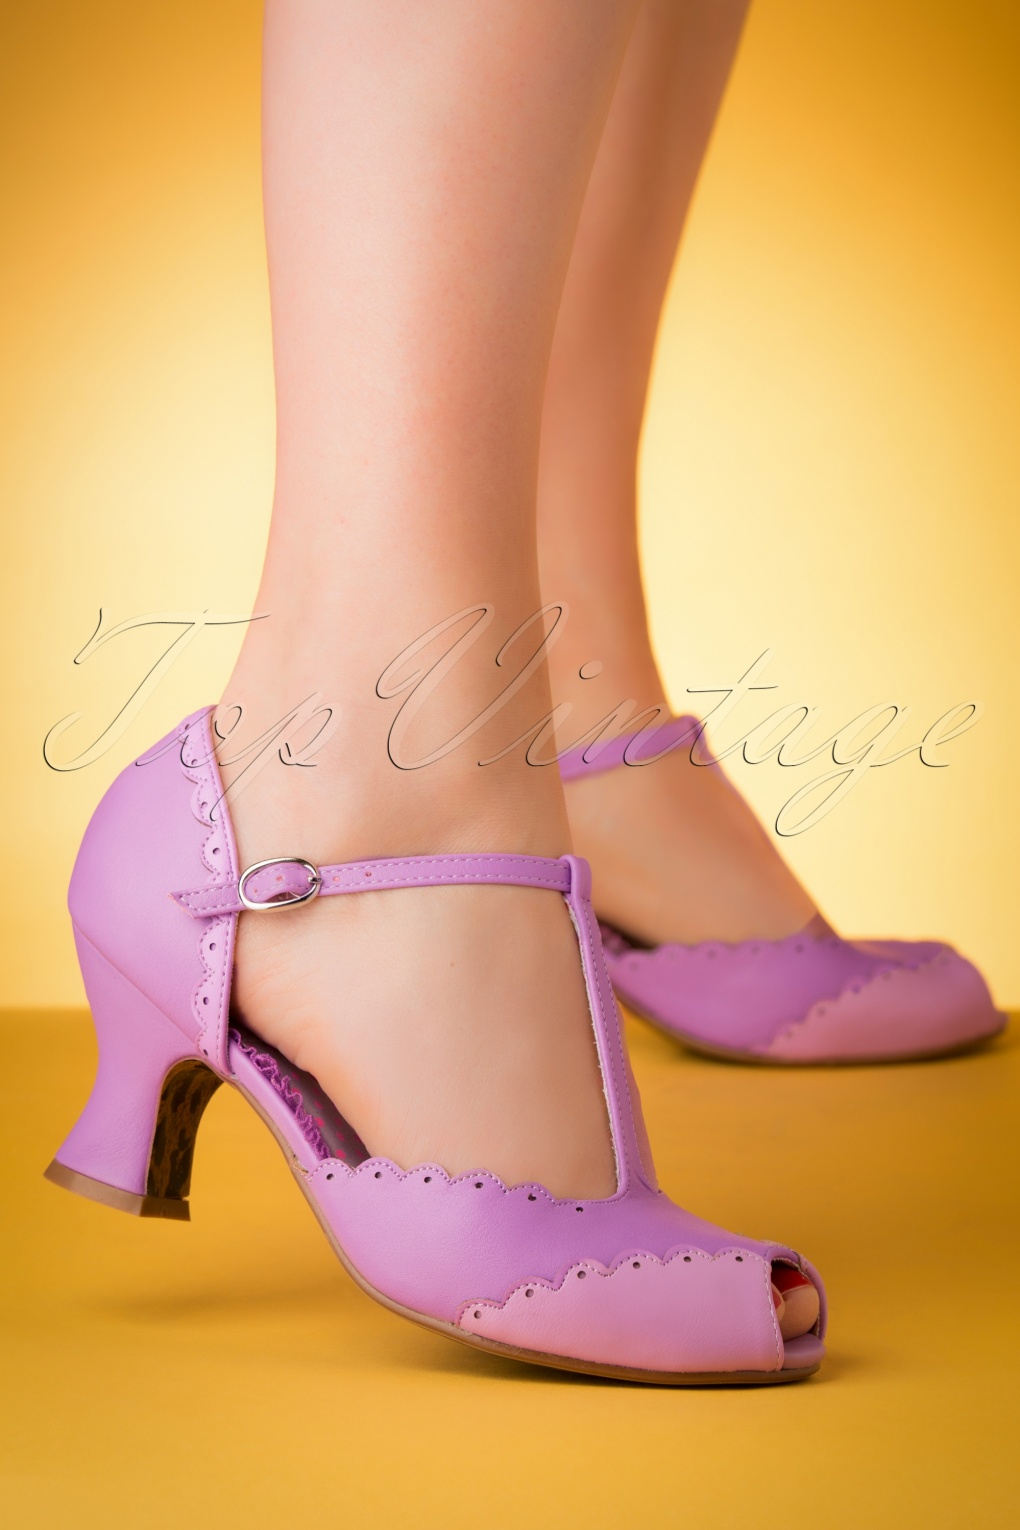 Pin Up Shoes- Heels, Pumps & Flats 50s Carlie T-Strap Pumps in Lavender �60.39 AT vintagedancer.com